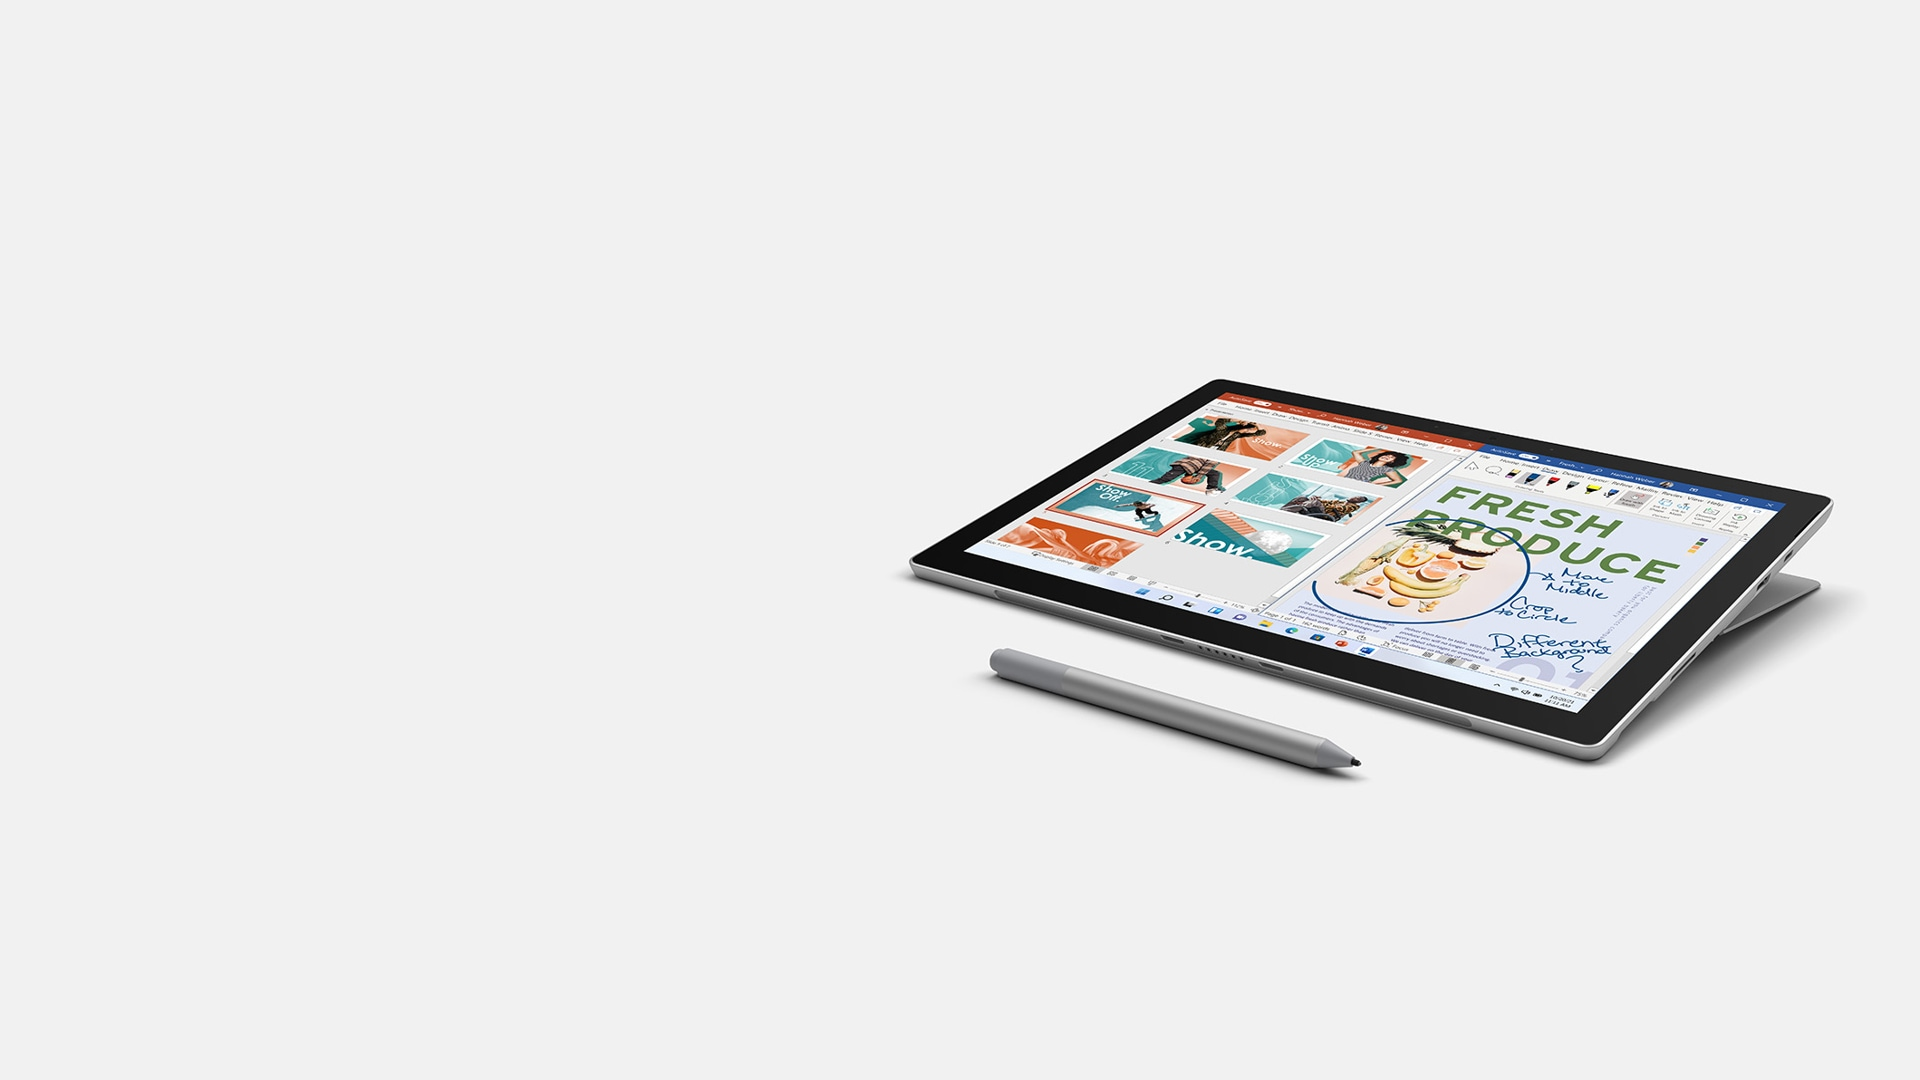 Surface Pro 7+ shown with Surface Pen.